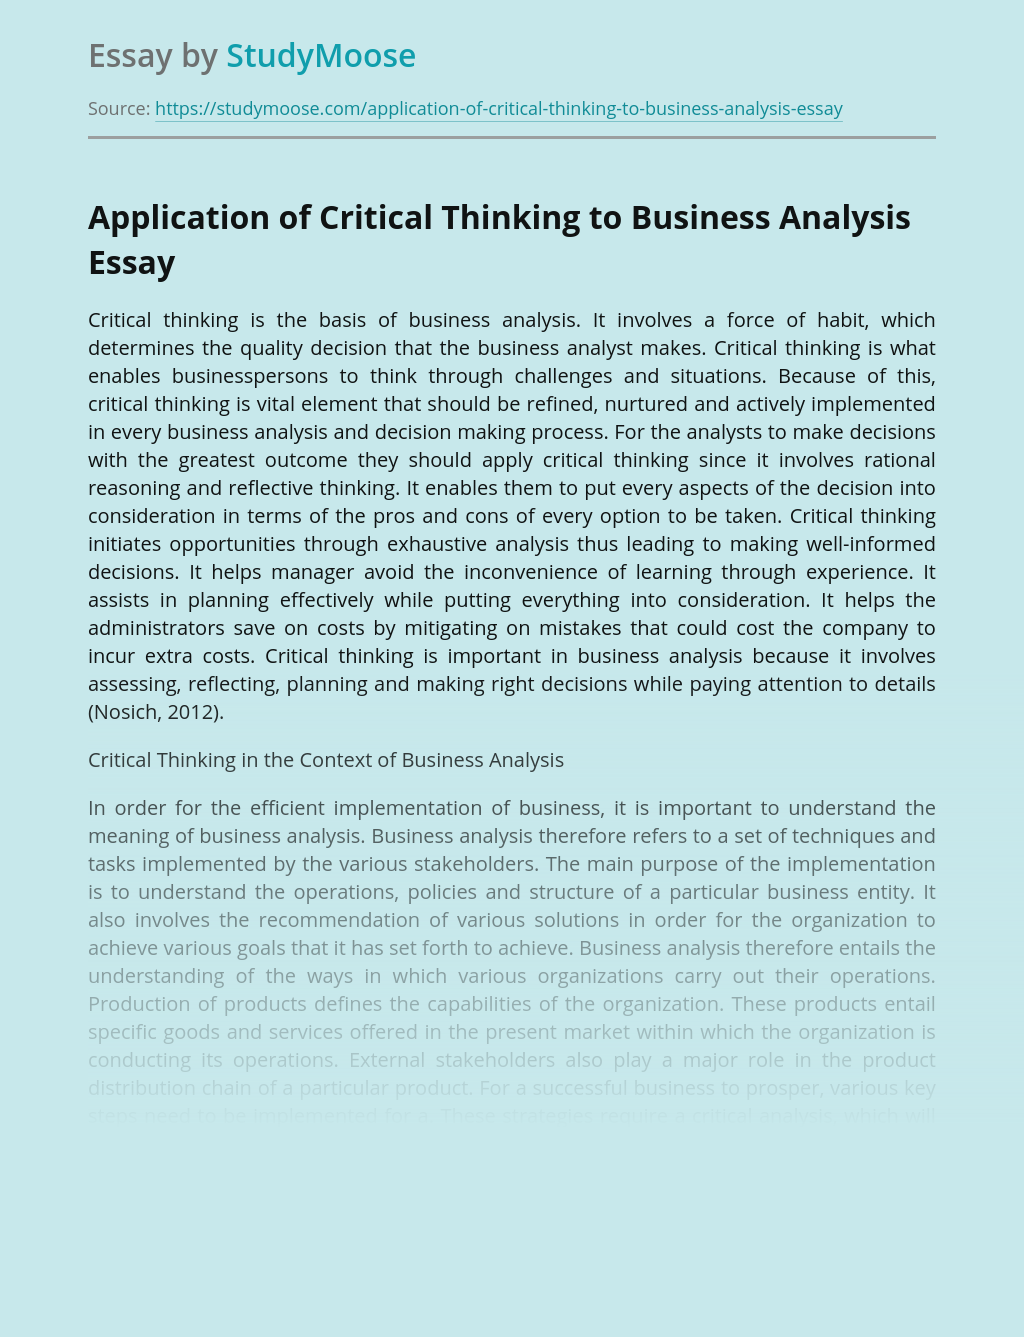 Application of Critical Thinking to Business Analysis